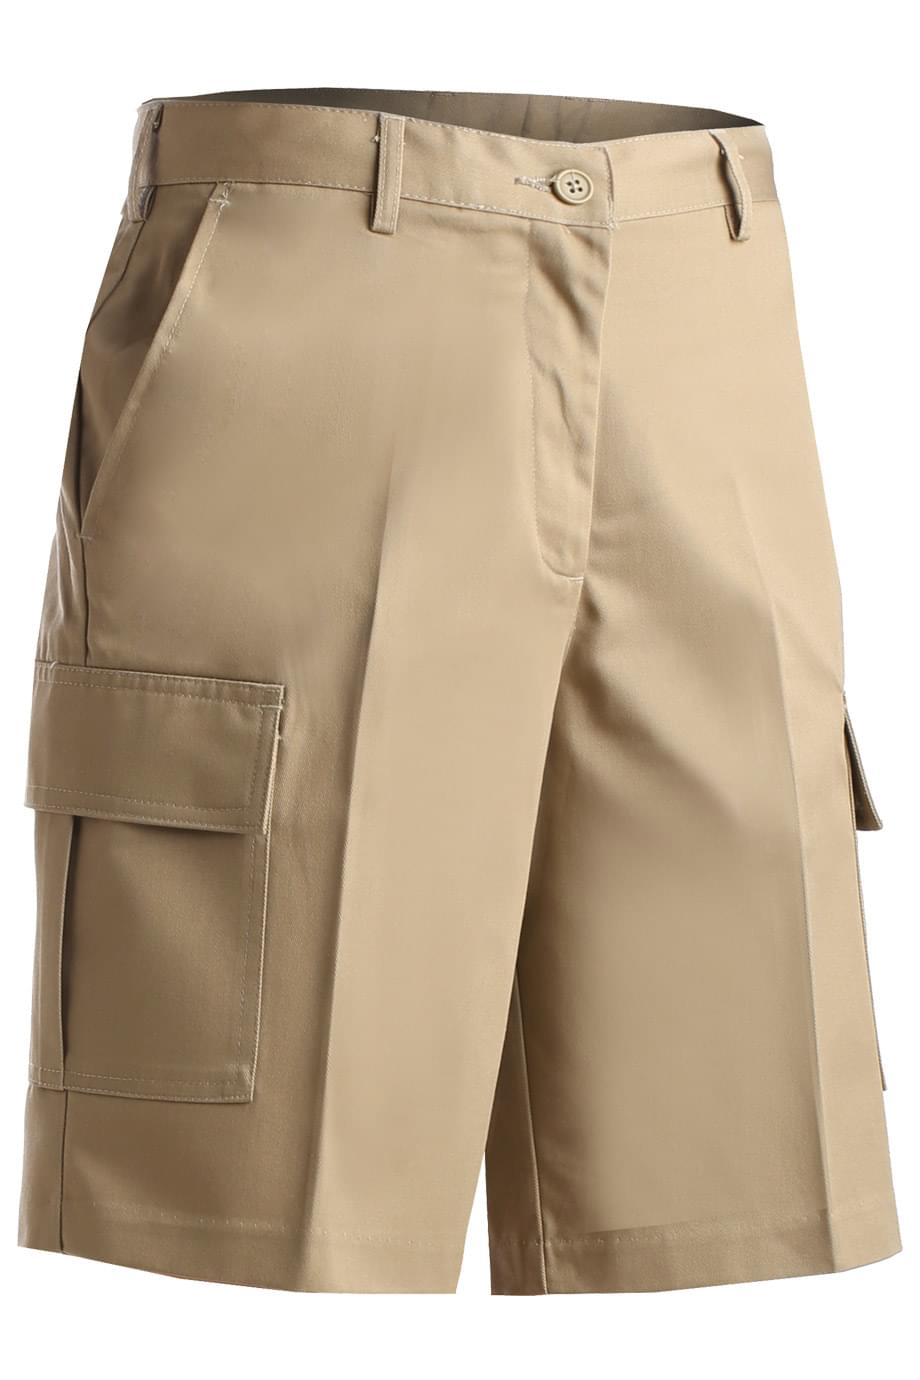 LADIES' UTILITY FLAT FRONT CARGO SHORT